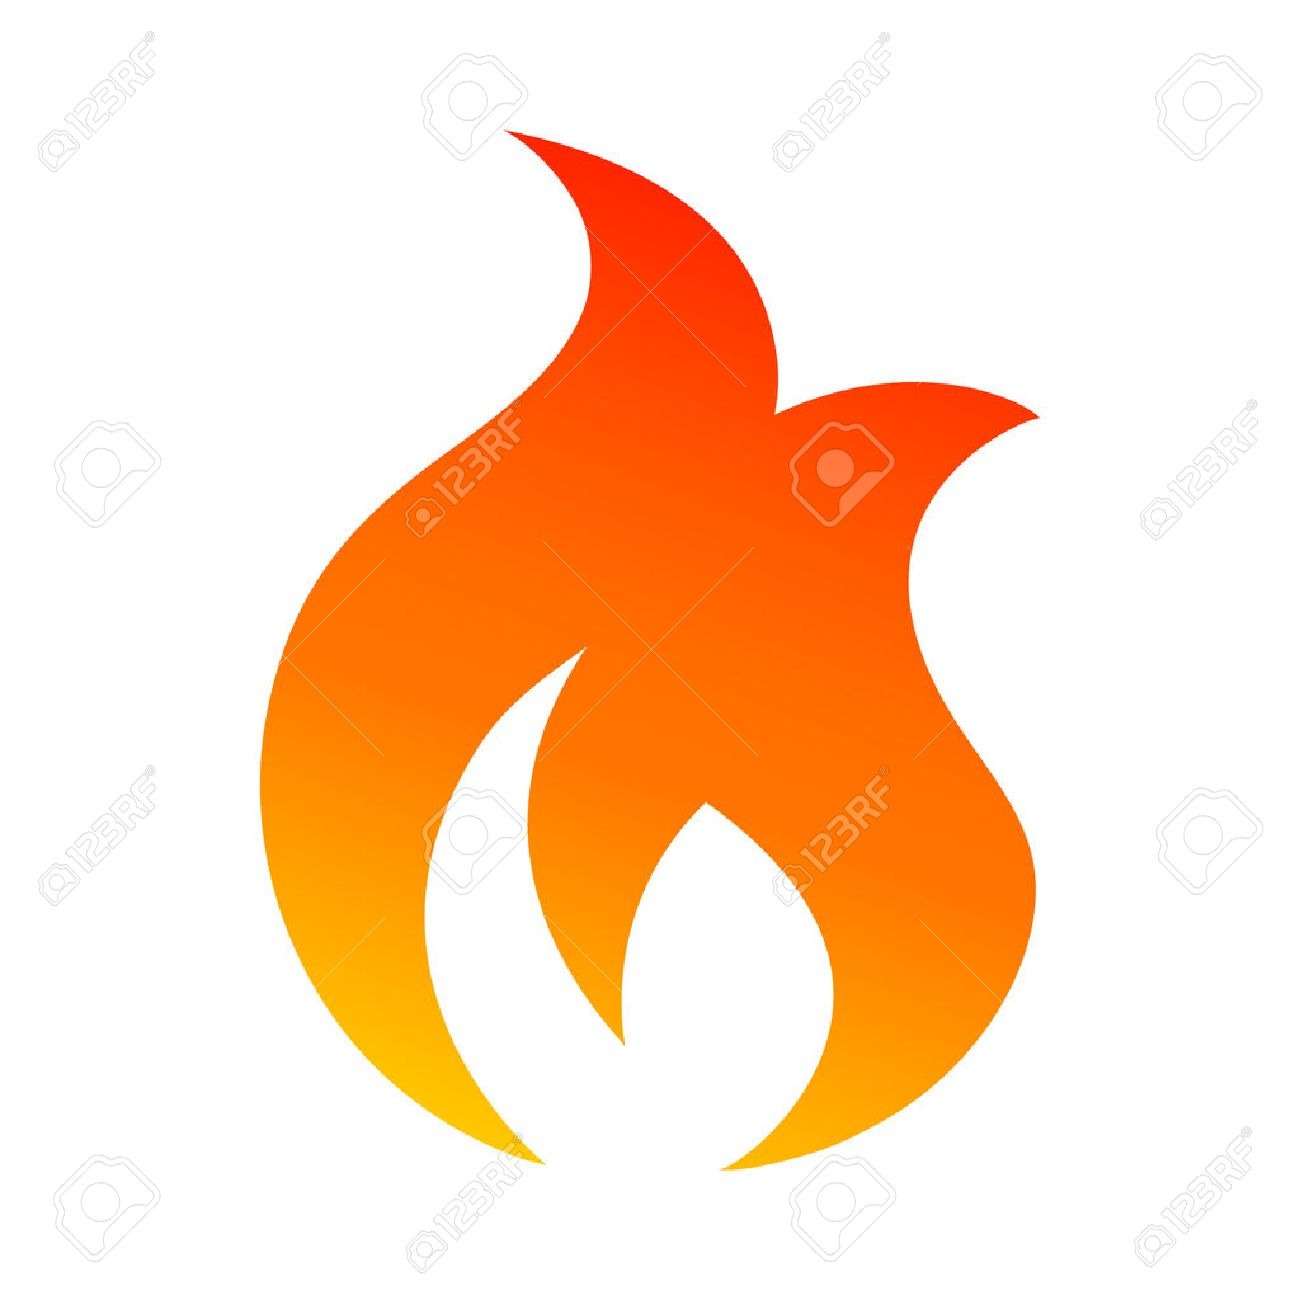 flame vector icon royalty free cliparts vectors and stock rh 123rf com vector flame tribal flamingo vector